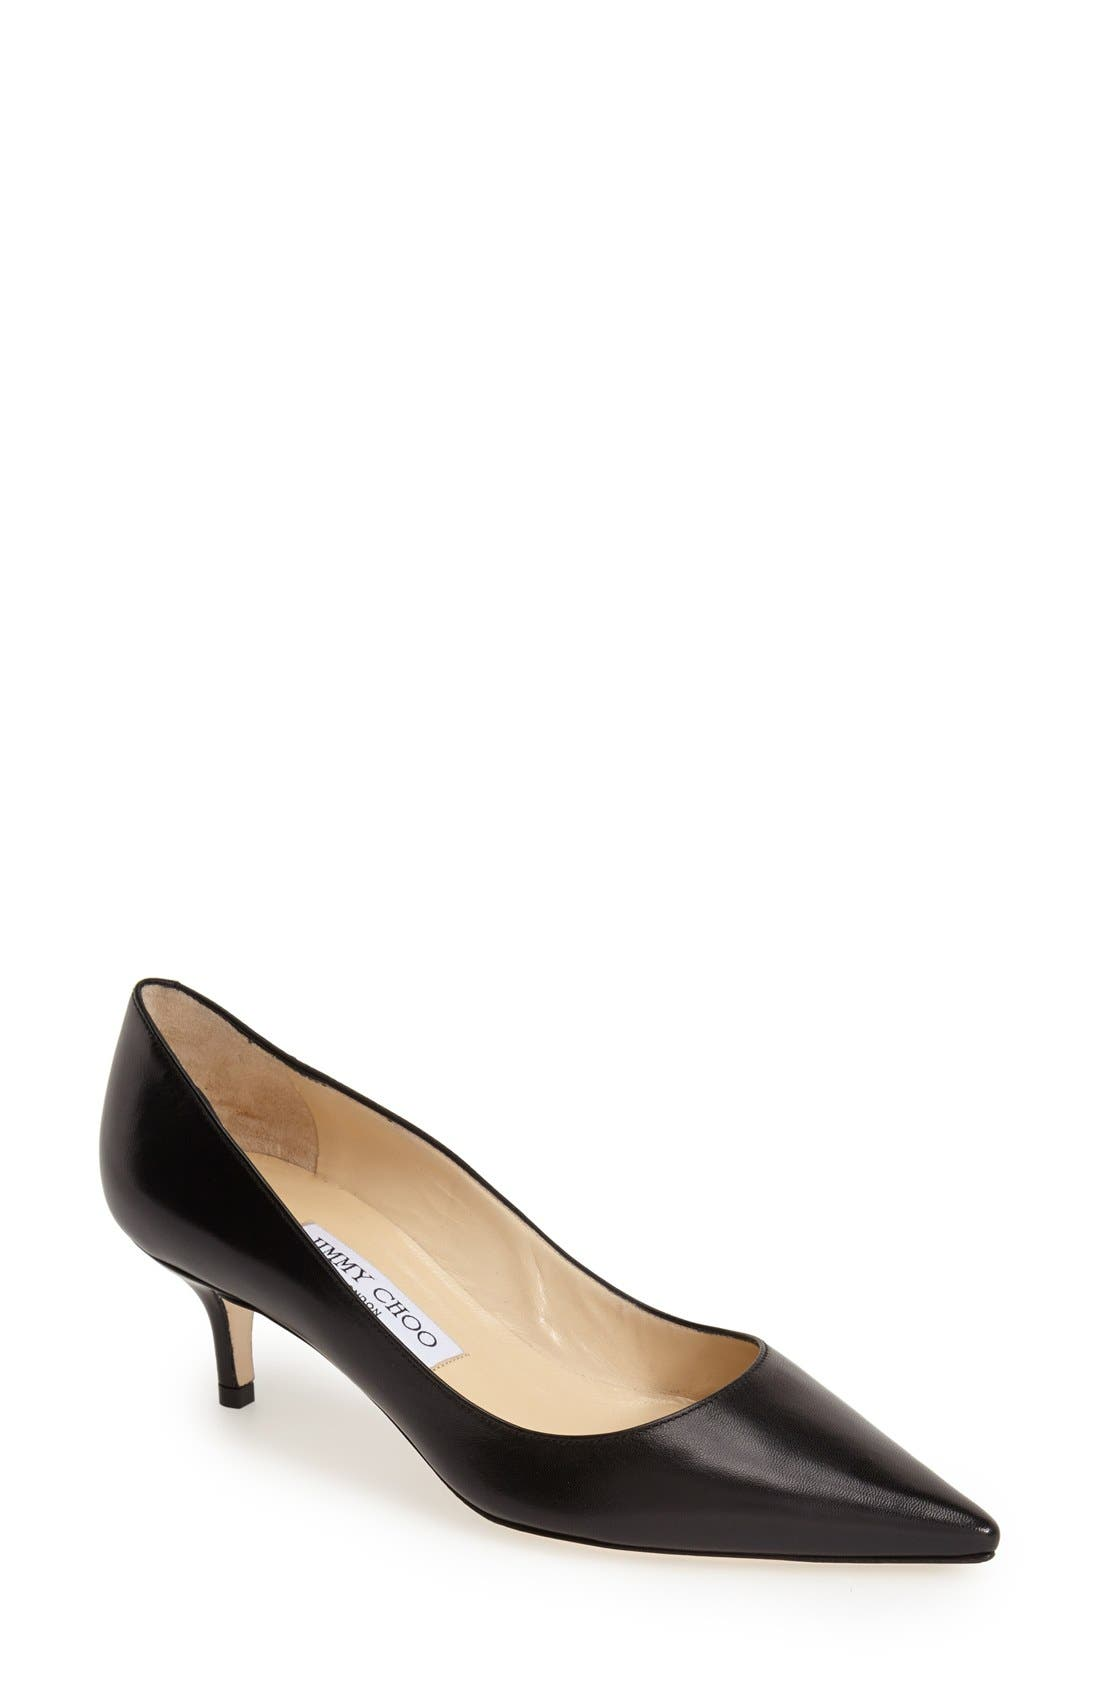 Alternate Image 1 Selected - Jimmy Choo 'Aza' Pump